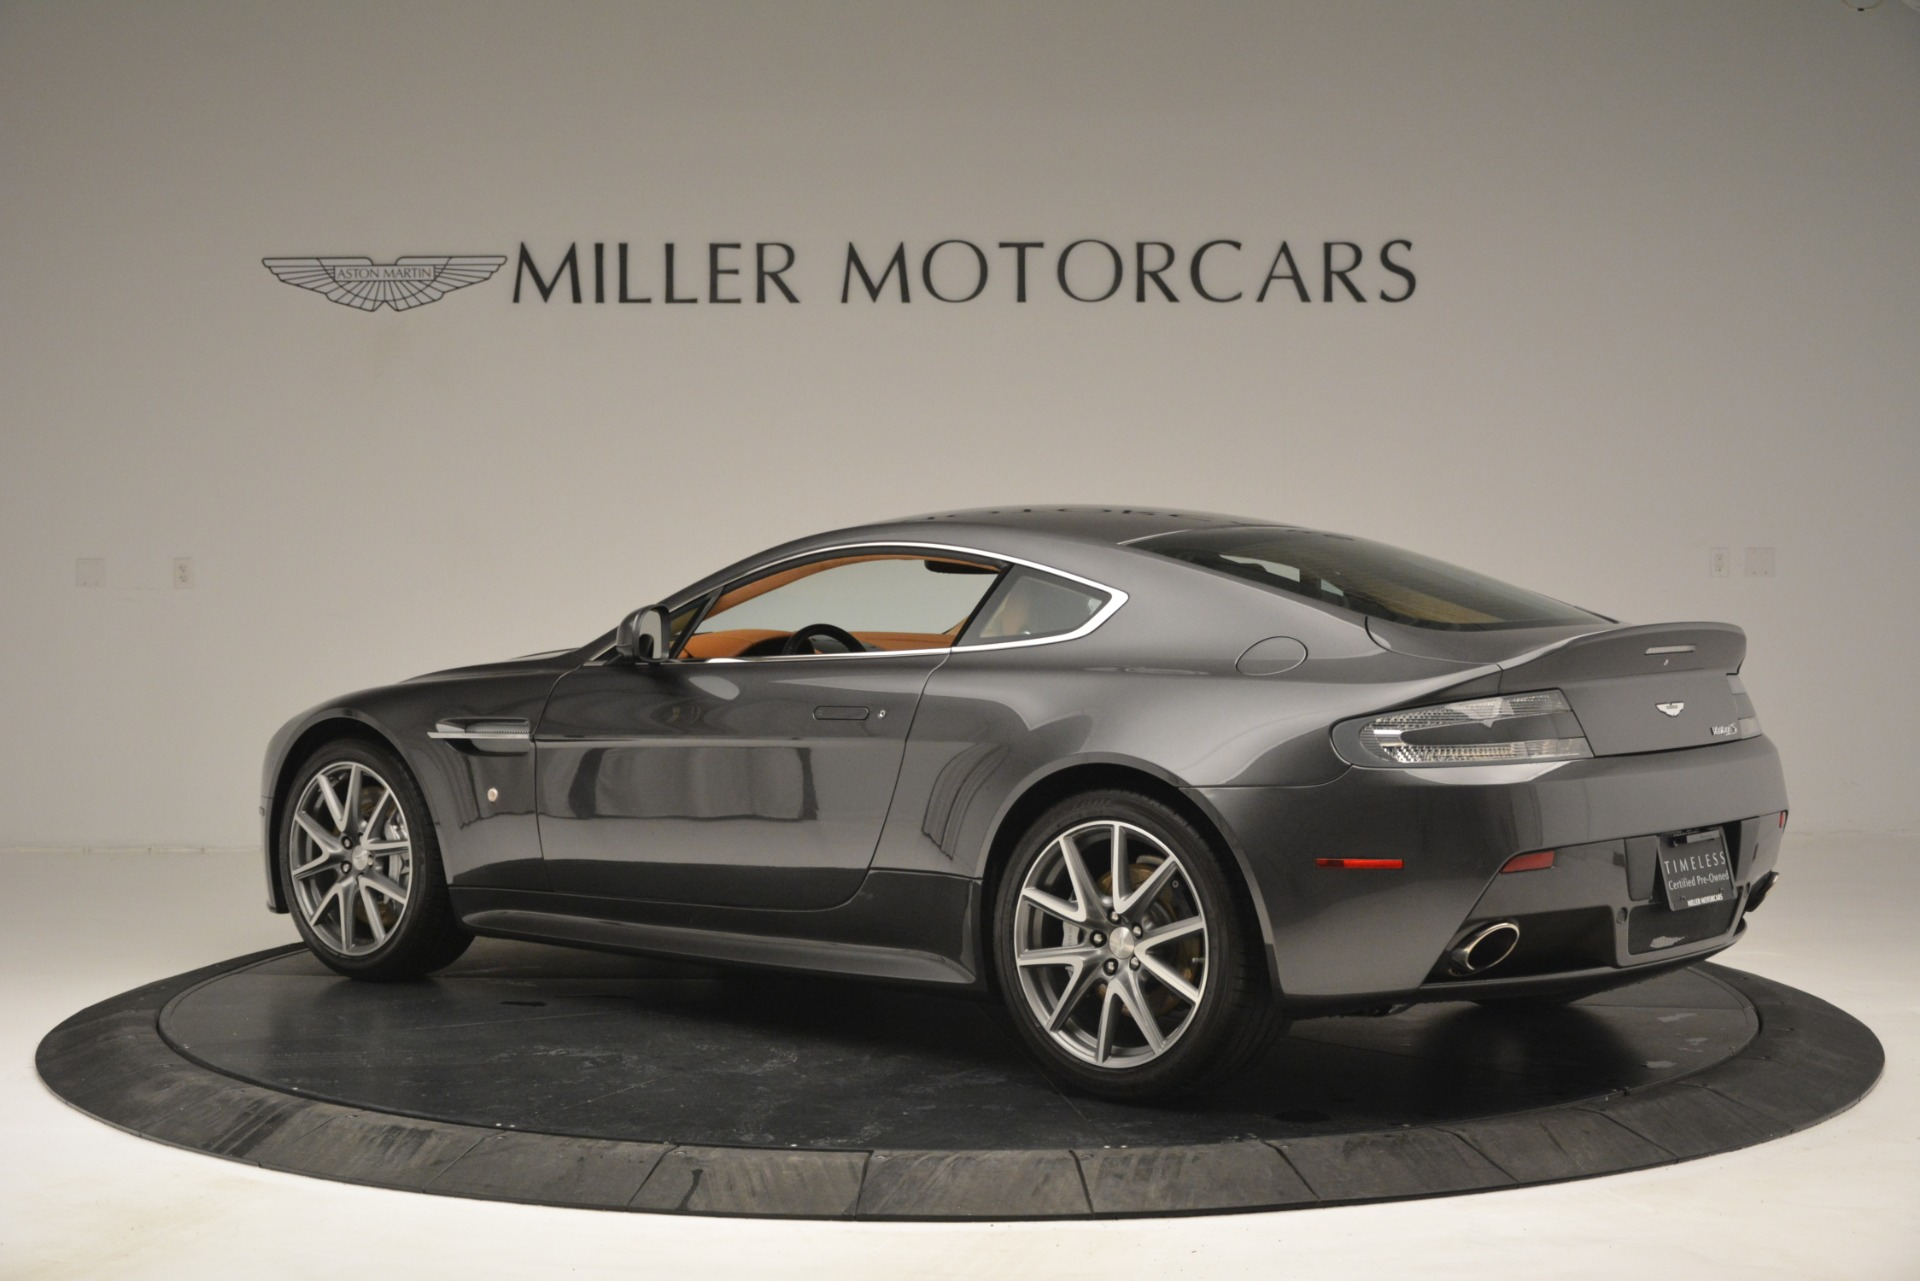 Pre Owned 2012 Aston Martin V8 Vantage S Coupe For Sale Special Pricing Mclaren Greenwich Stock 7486